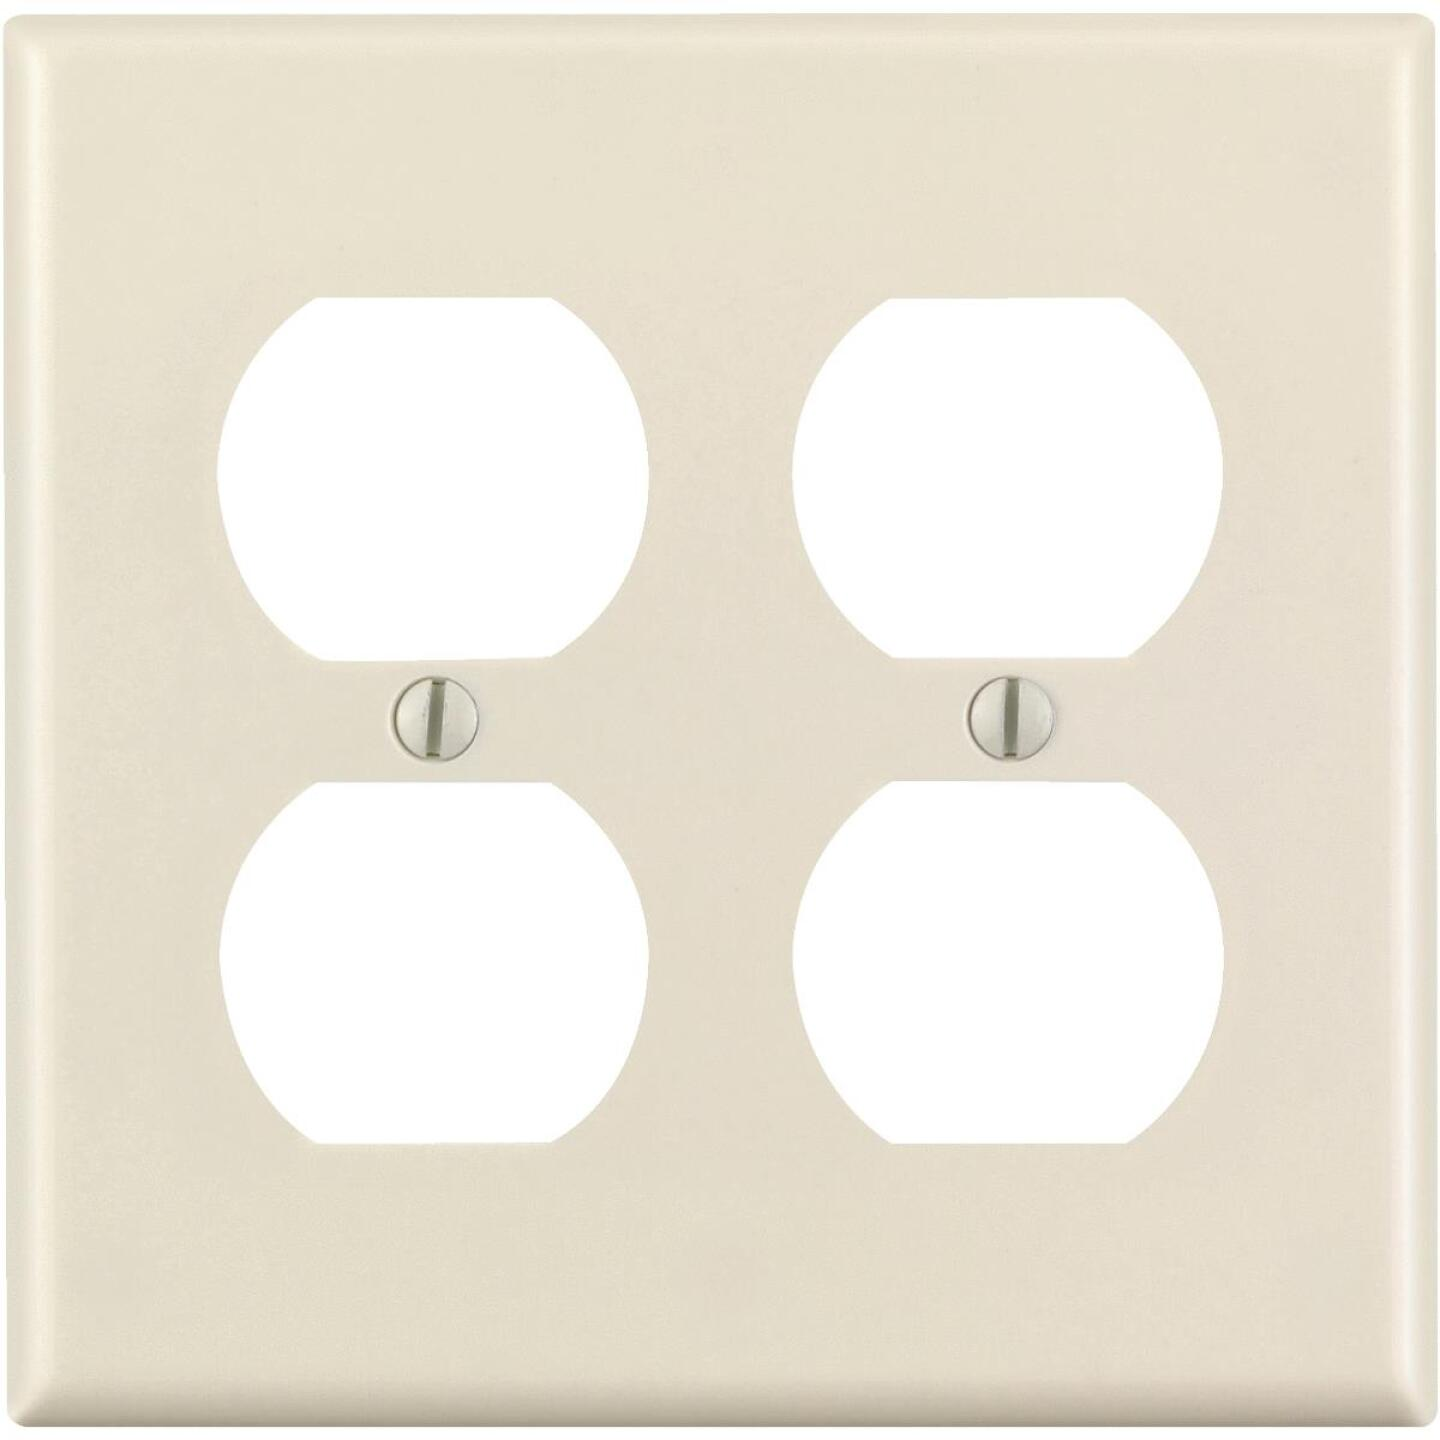 Leviton 2-Gang Smooth Plastic Outlet Wall Plate, Light Almond Image 1